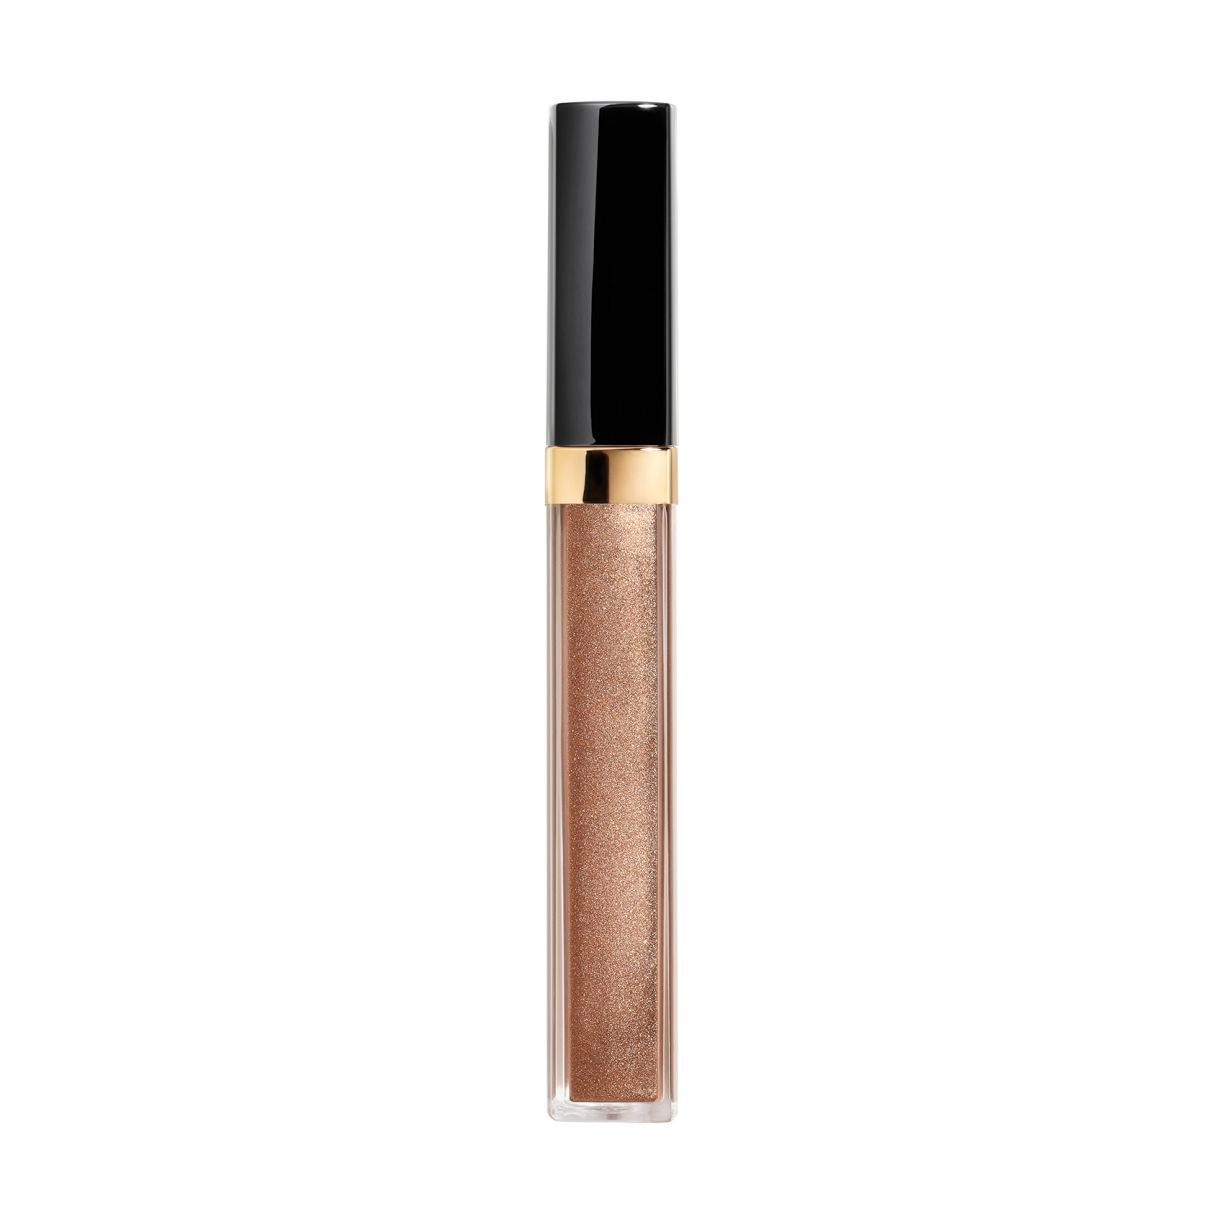 ROUGE COCO GLOSS GEL BRILLANTE IDRATANTE 808 LIQUID BRONZE 5.5G